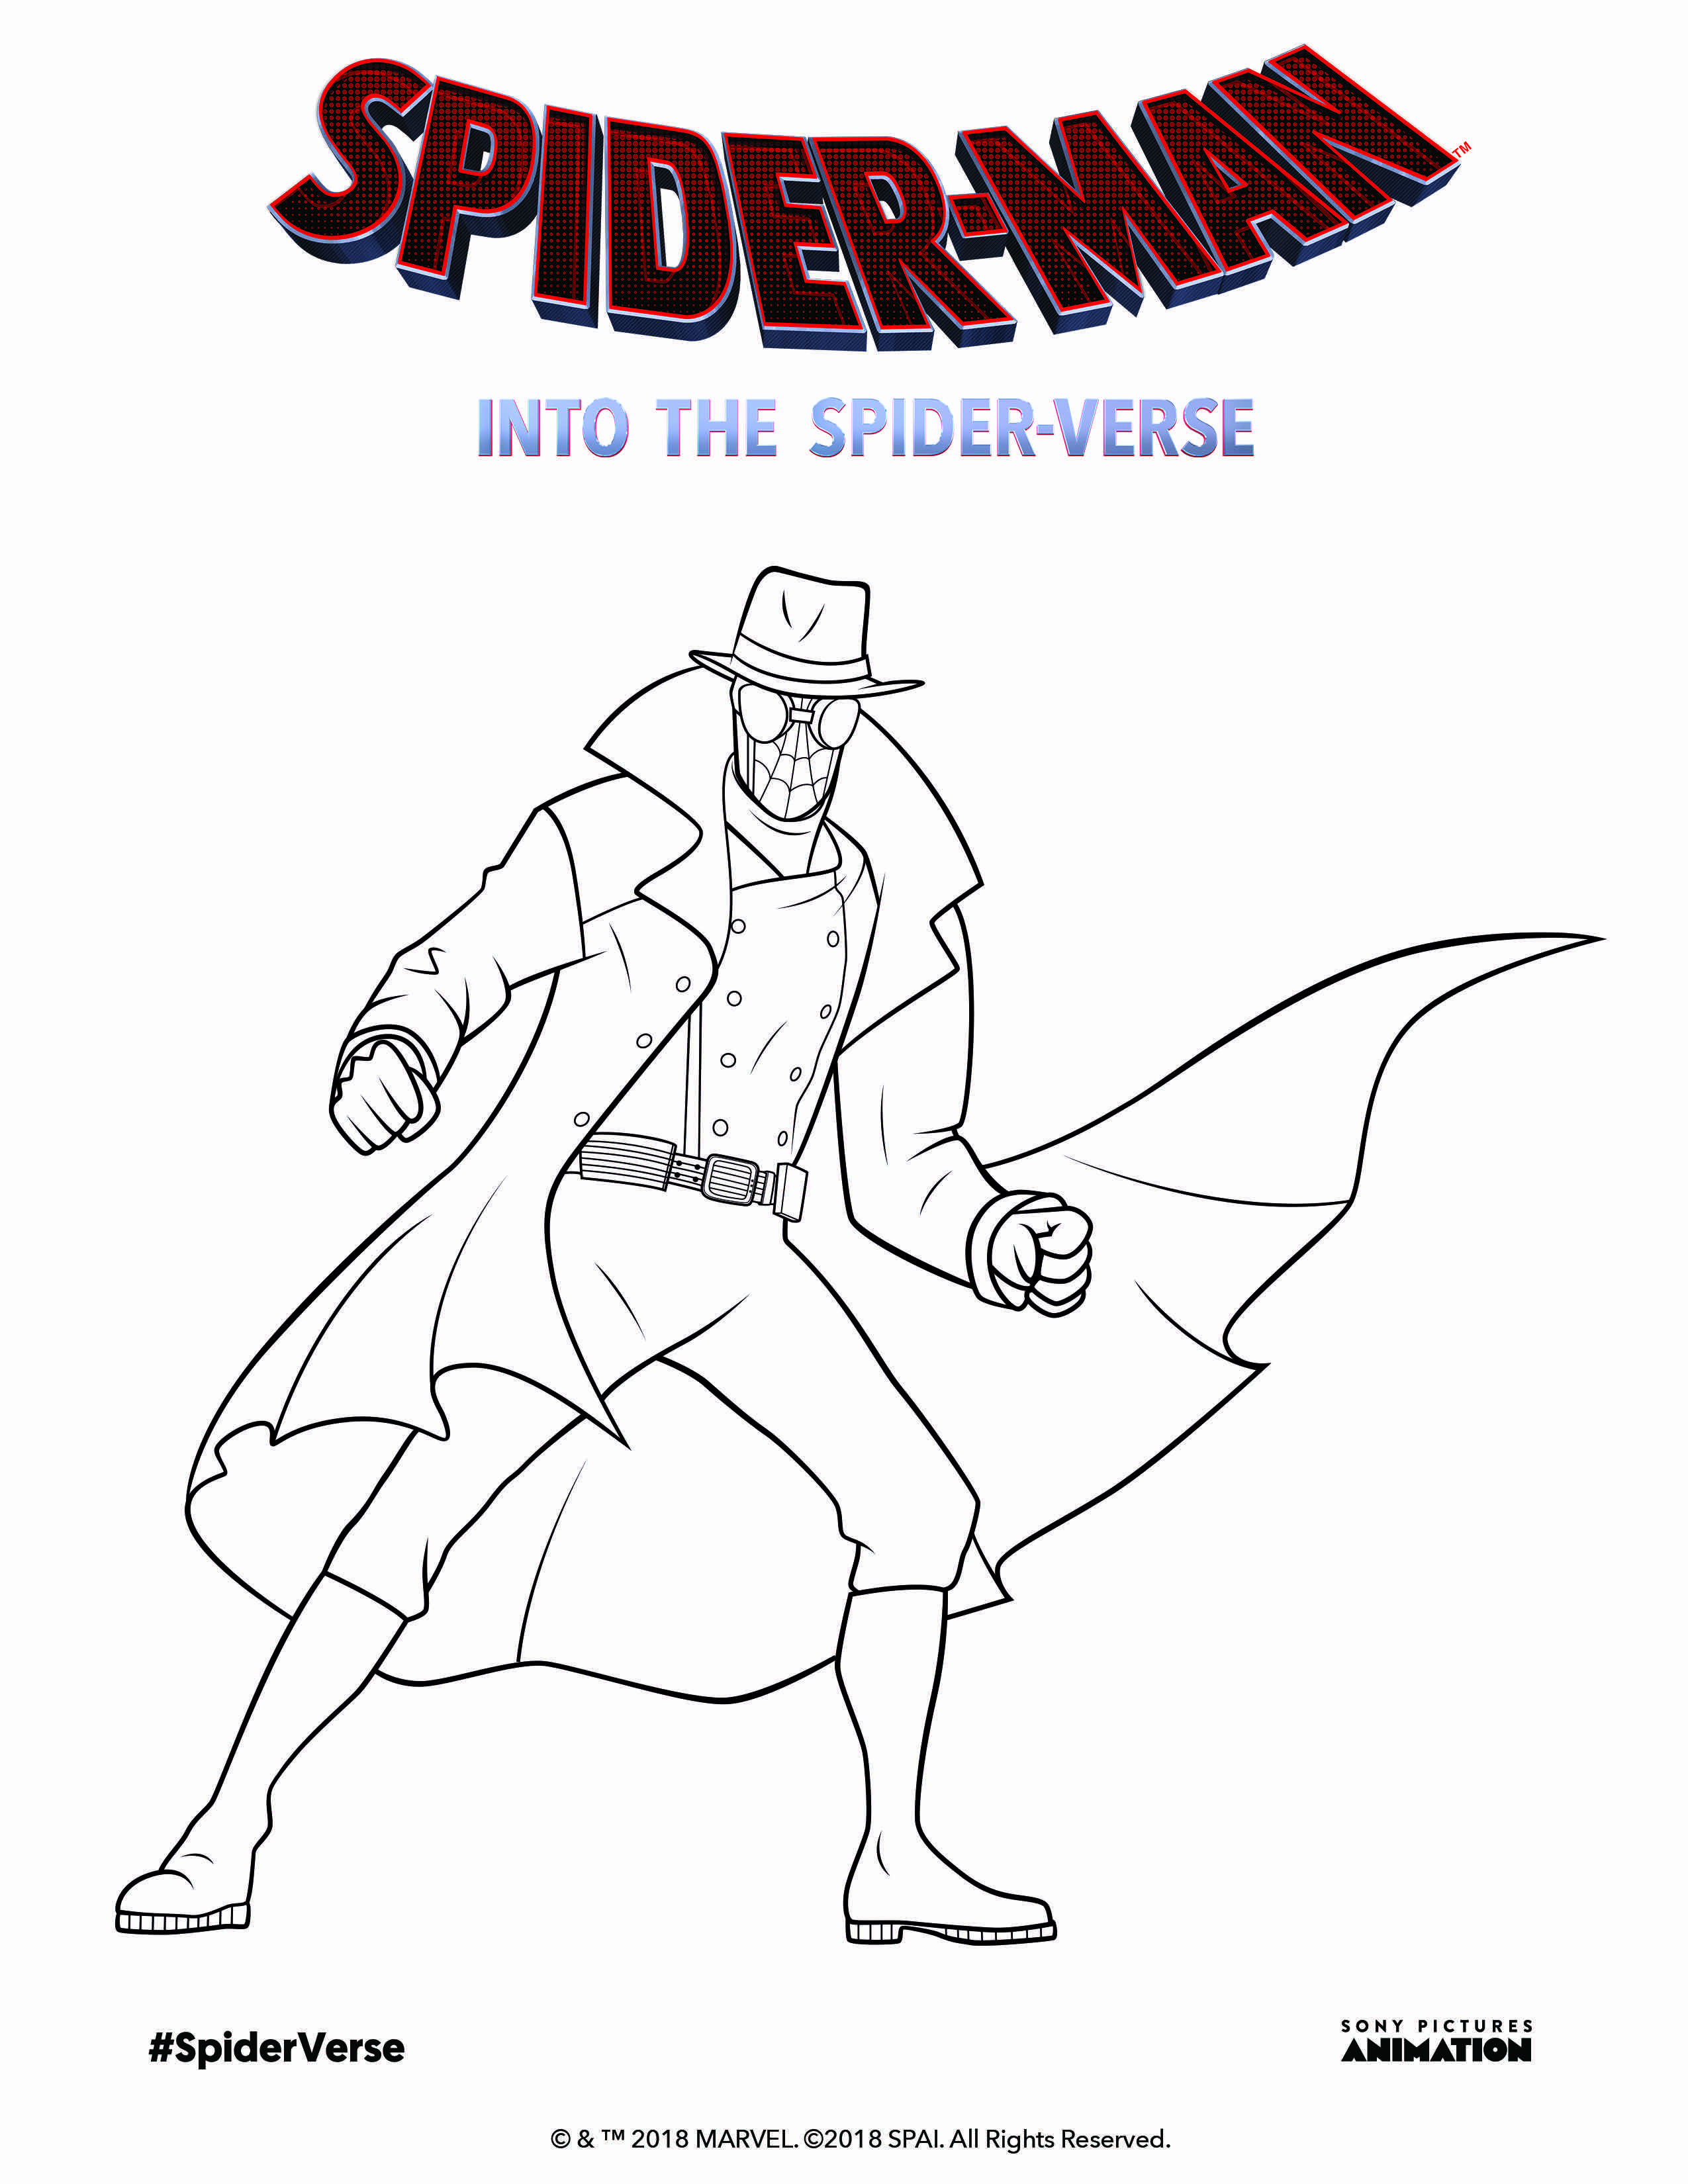 Get Ready For Spiderman Into The Spiderverse By Coloring Spidernoir In Theaters 12 14 18 Coloring Pages Space Coloring Pages Marvel Coloring